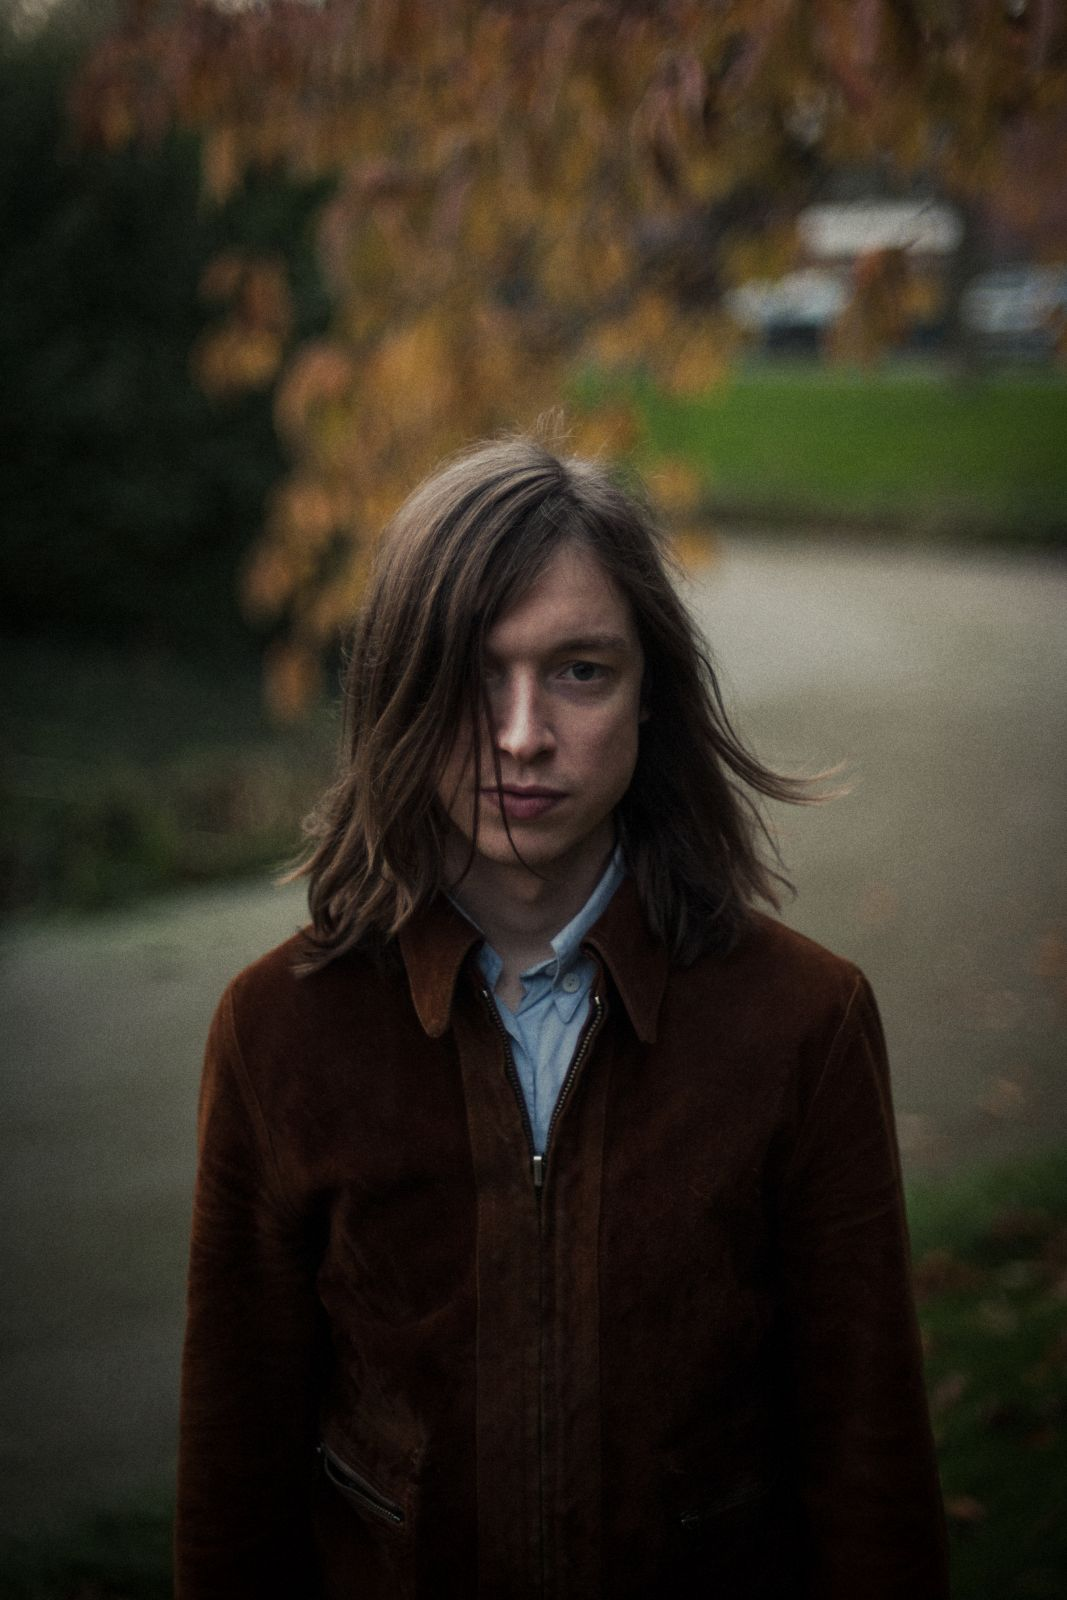 Jacco Gardner Announces New LP, 'Hypnophobia' Out May 5th